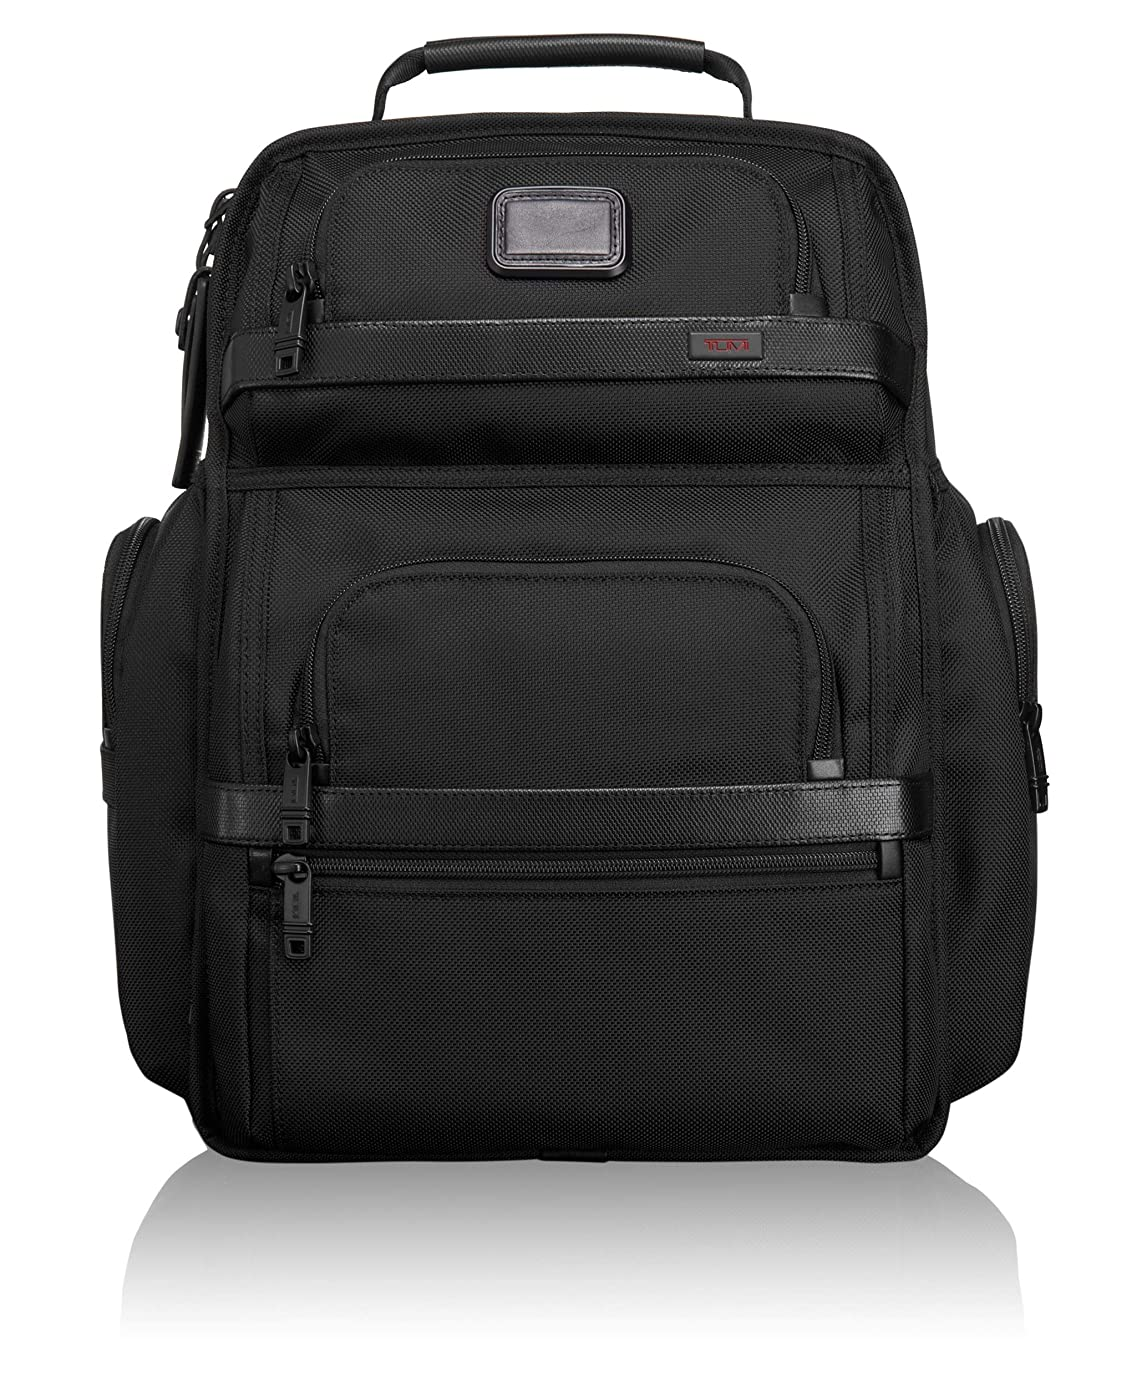 TUMI - Alpha 2 T-Pass Business Class Laptop Brief Pack - 15 Inch Computer Backpack for Men and Women - Black